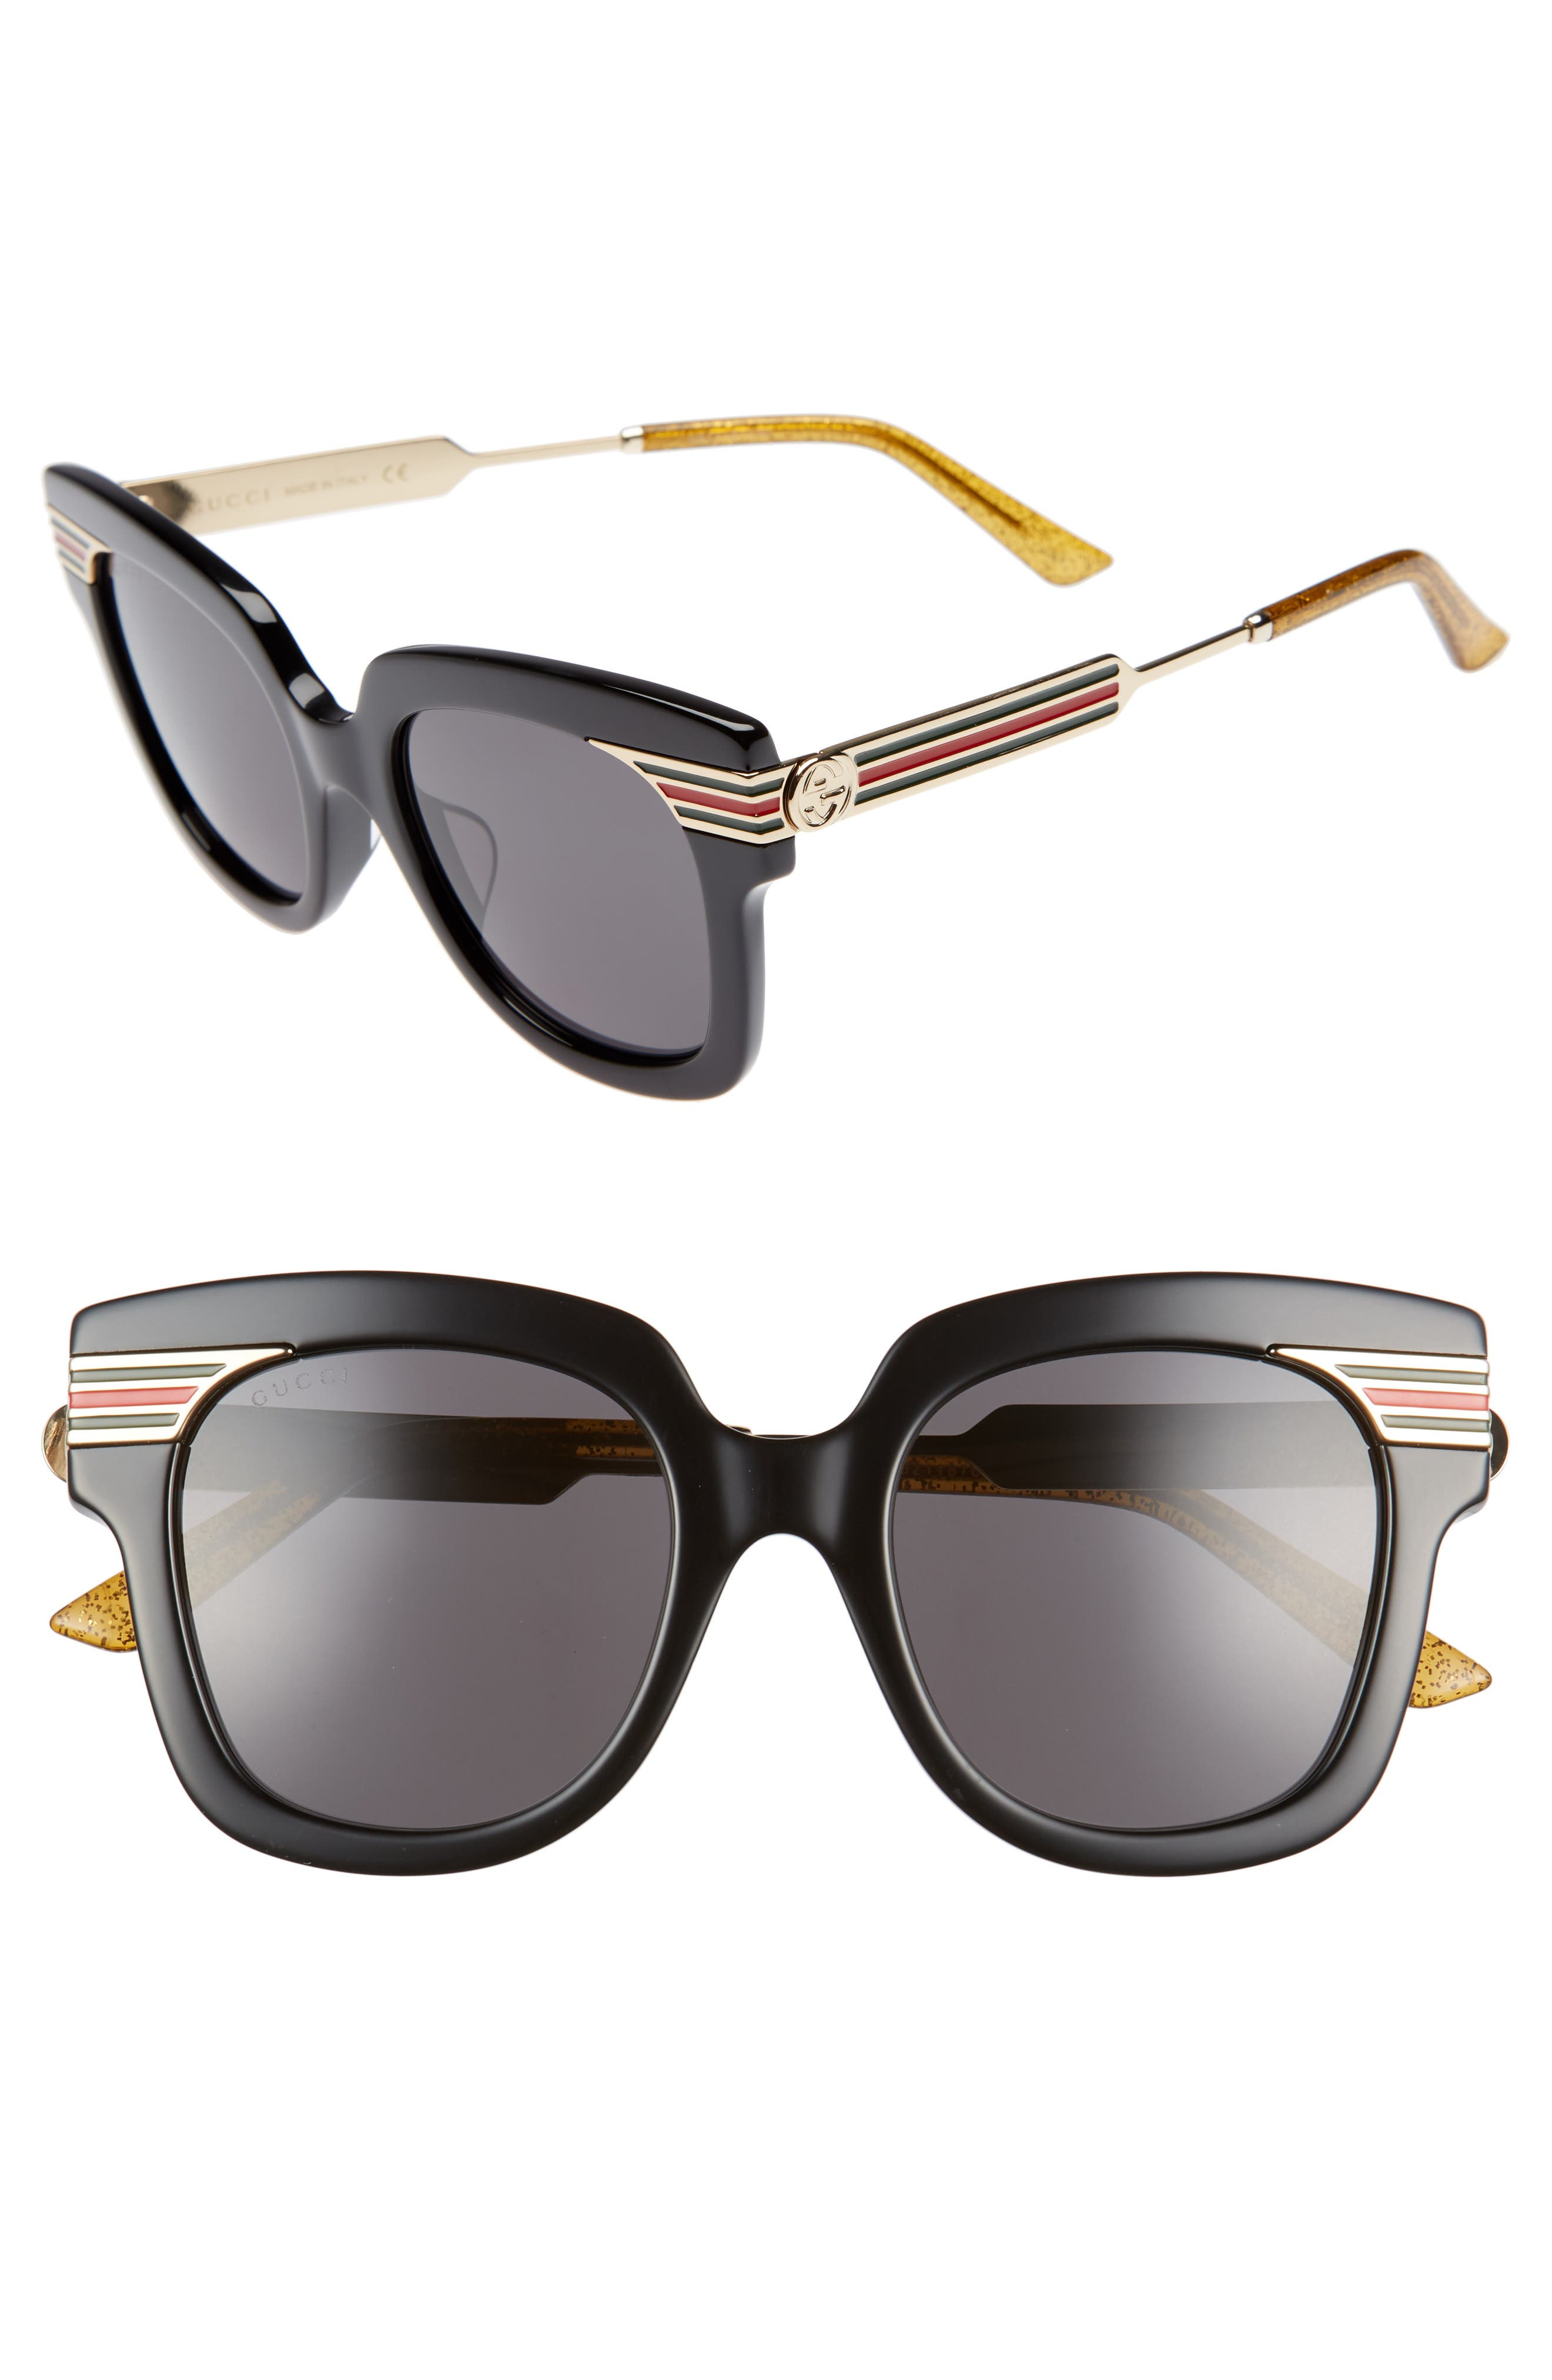 51mm Cat Eye Sunglasses,                             Main thumbnail 1, color,                             Black/ Gold